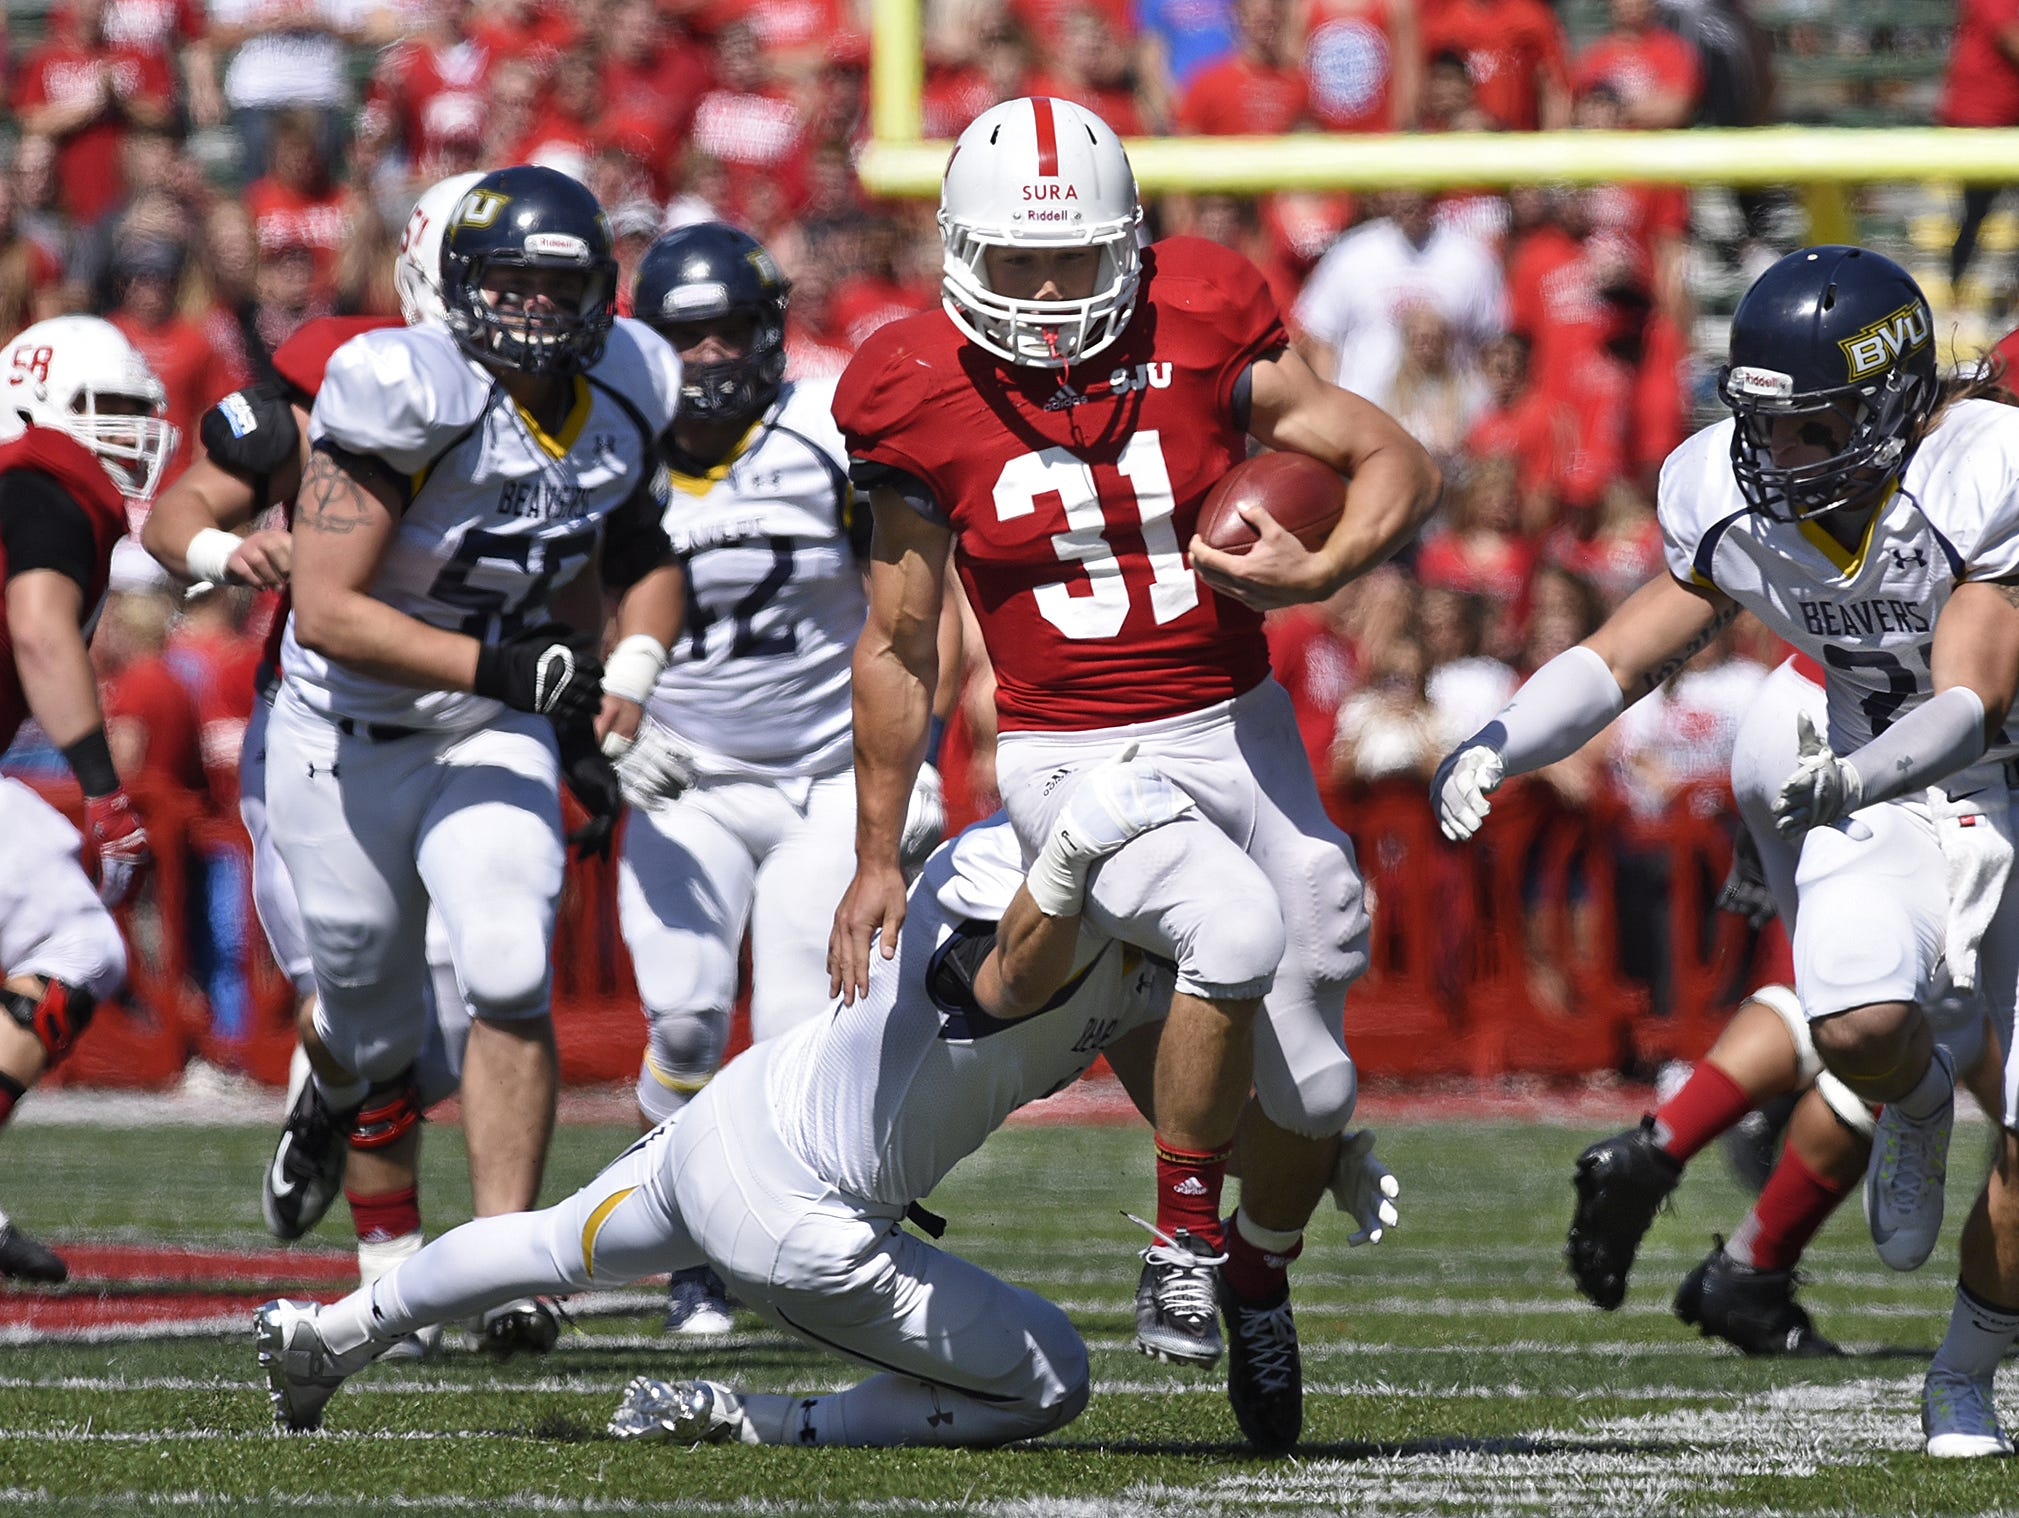 St. John's senior running back Sam Sura carries the ball against Buena Vista earlier this season. The MIAC's leading rusher is one of seven Johnnies' players who graduated from South St. Paul High School. That school faces the Rocori team in high school playoffs this weekend.